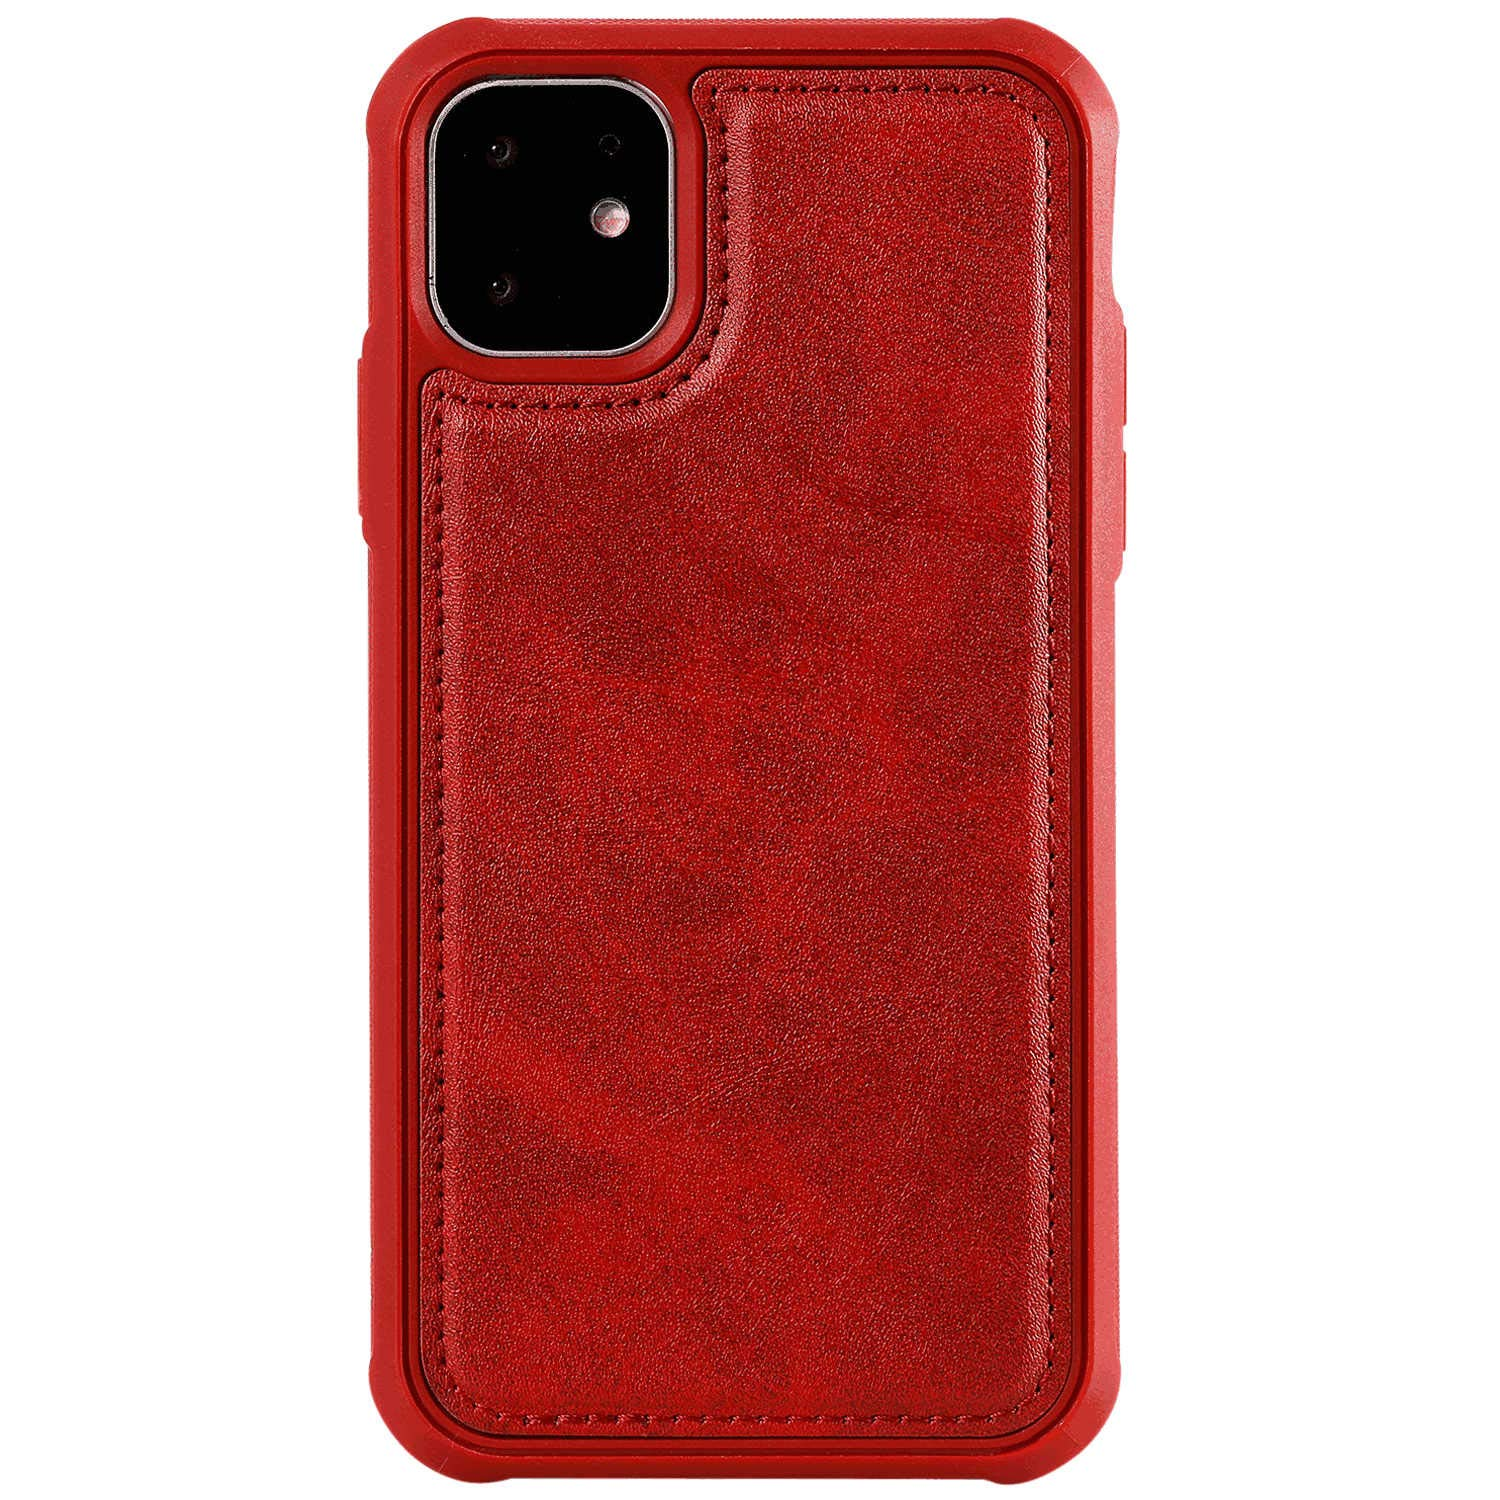 iPhone Xs Max Flip Case Cover for iPhone Xs Max Leather Kickstand Extra-Protective Business Cell Phone Cover Card Holders with Free Waterproof-Bag